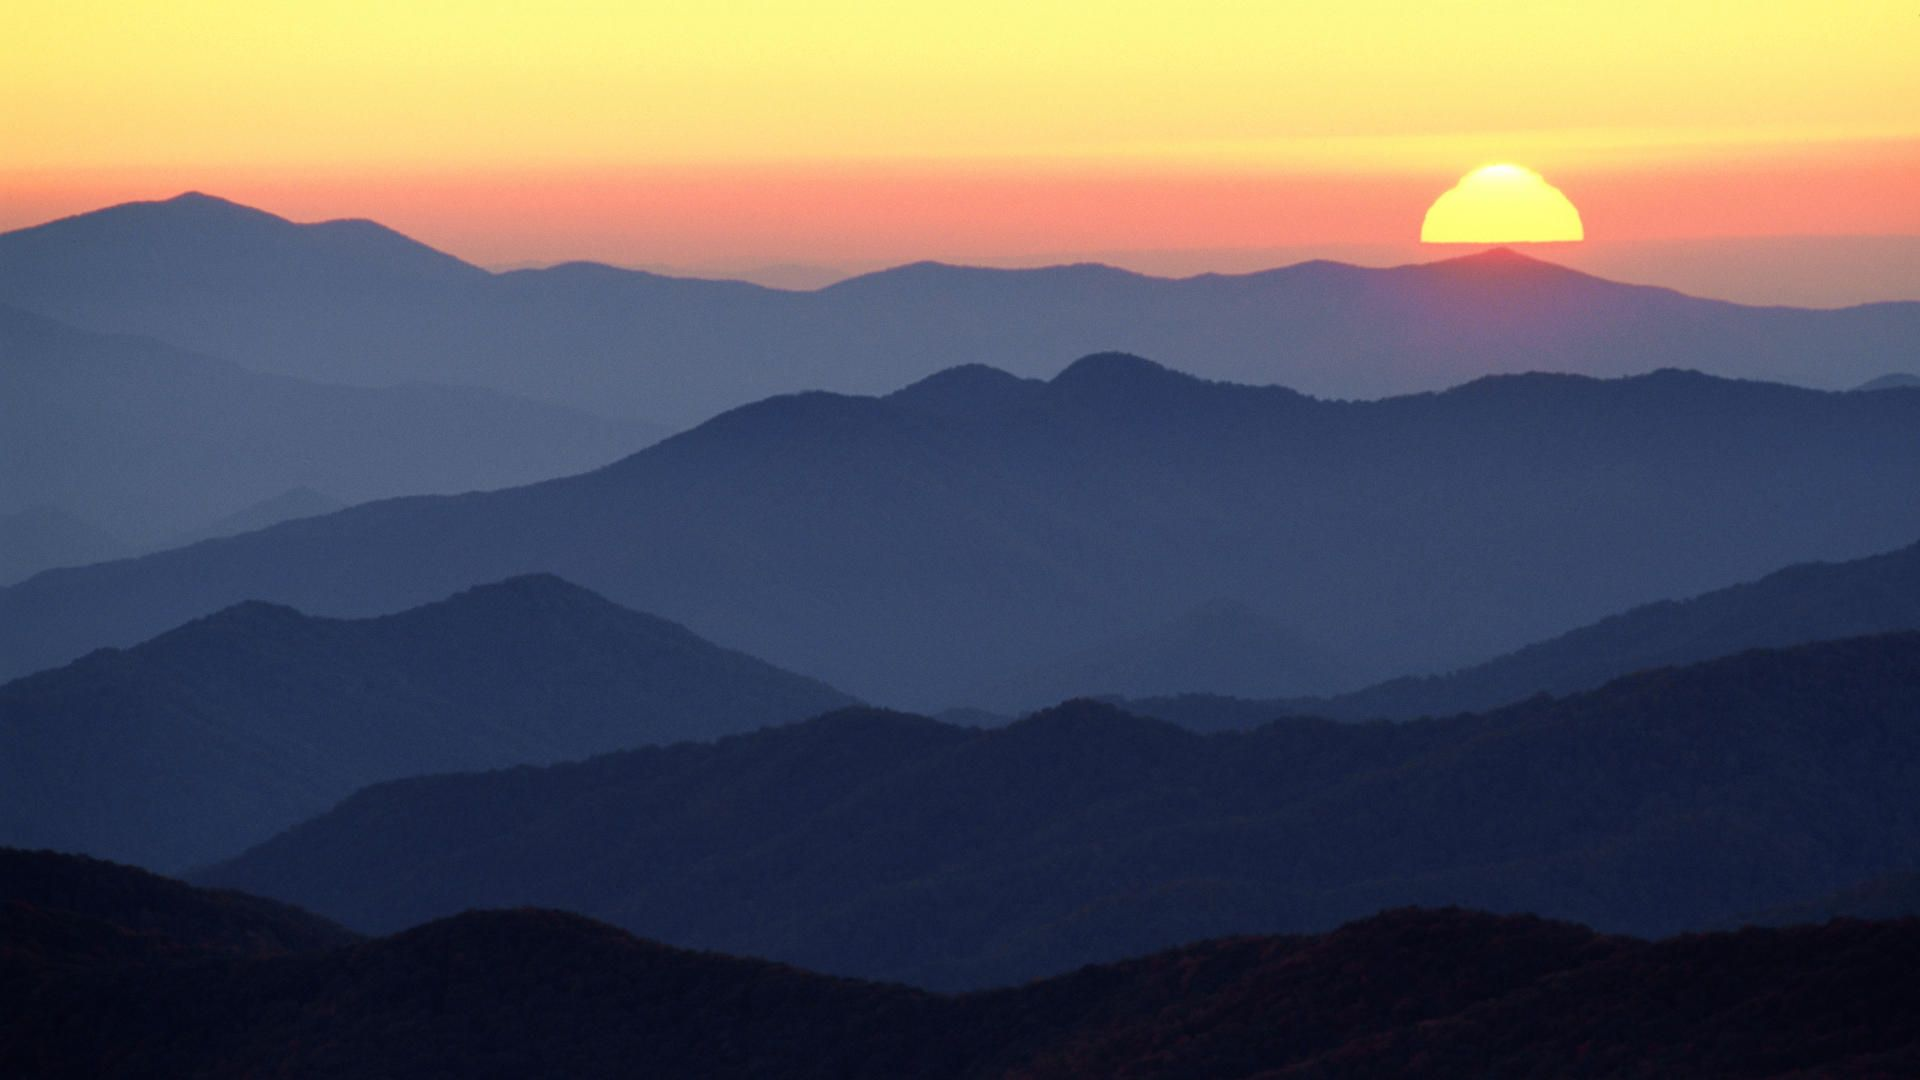 Download Background   Great Smoky Mountains at Sunset Tennessee 1920x1080